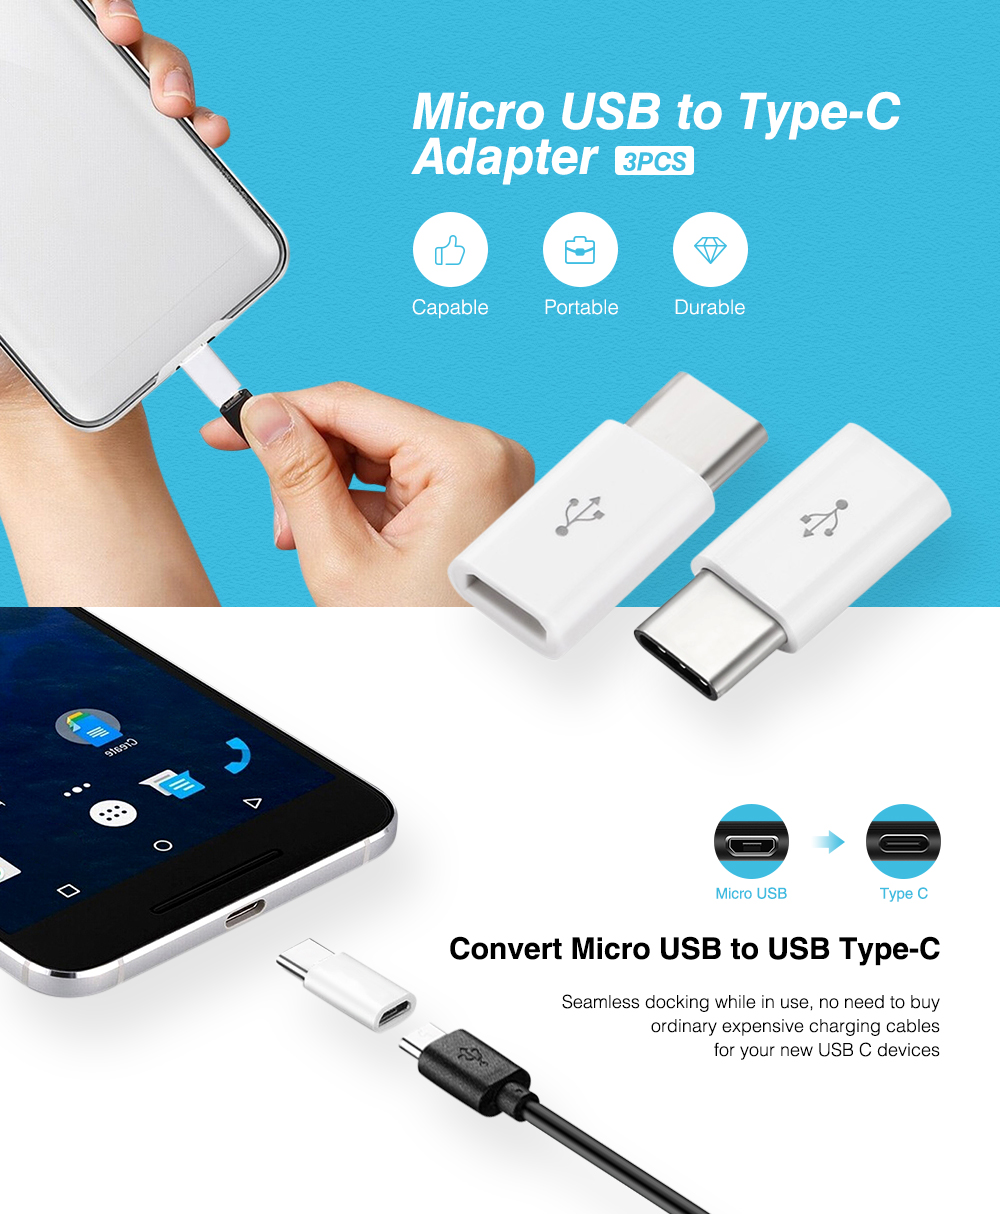 Micro USB to Type-C Adapter 3pcs / Set